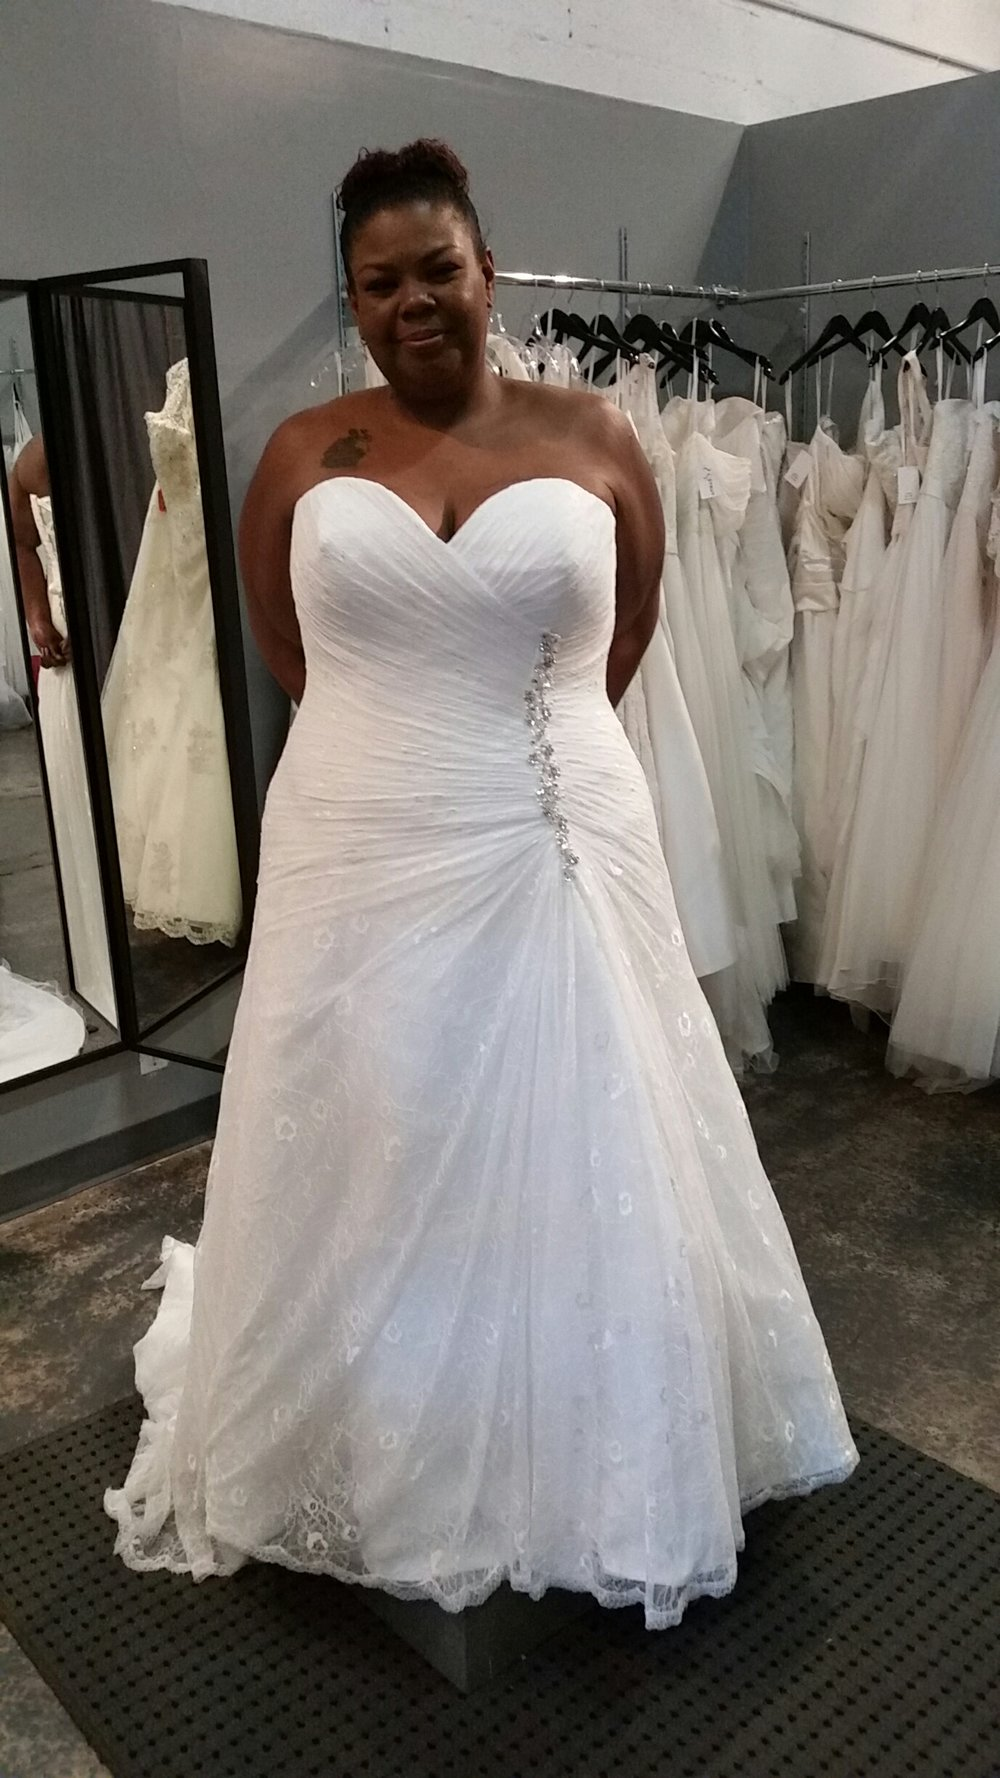 Bride in a gorgeous lace Callista bridal gown from Strut Bridal in Long Beach, CA. Curvy Rose has this dress on clearance in size 26.